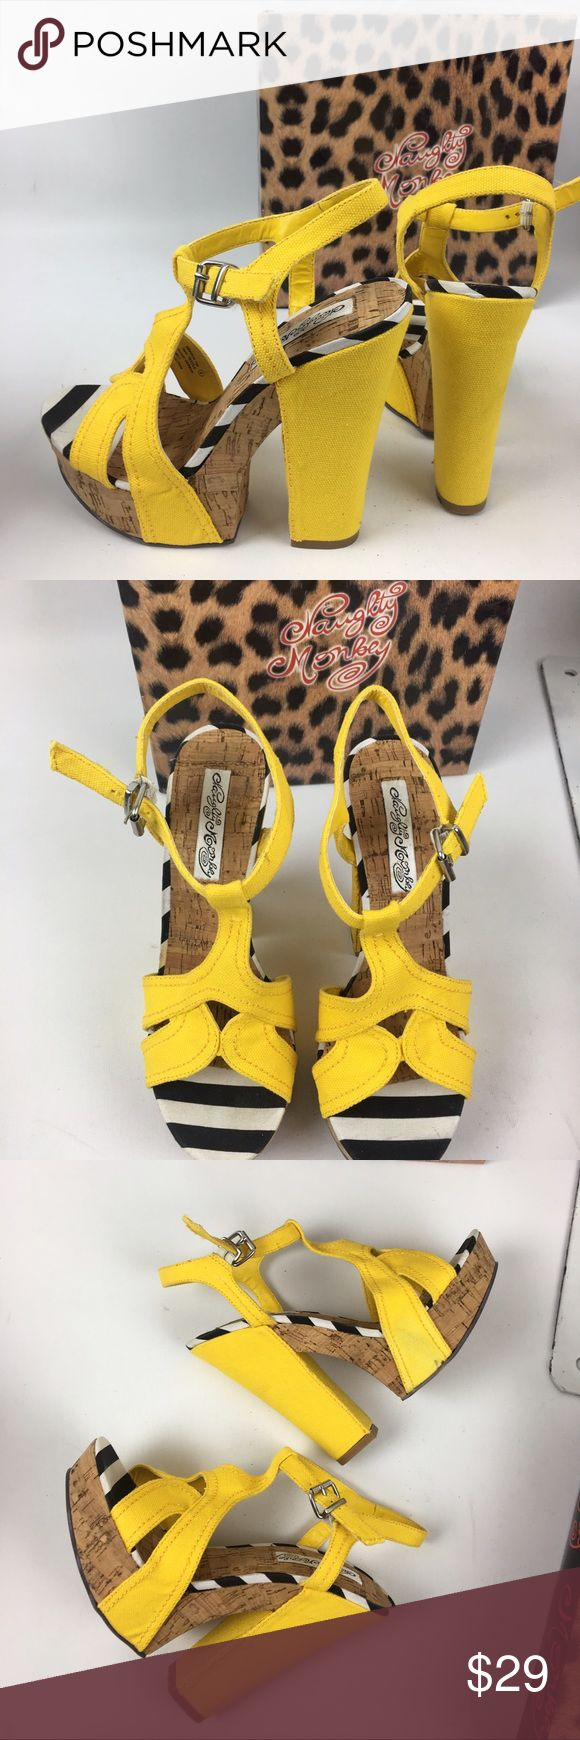 "NIB NAUGHTY MONKEY, yellow platform heels NIB Naughty Monkey, Marionette, yellow canvas, strappy peep toe platform high heels. These run 1/2 size small. Adjustable ankle strap. 1 1/2"" platform, 6"" heel. Cork platform Shoes Platforms"